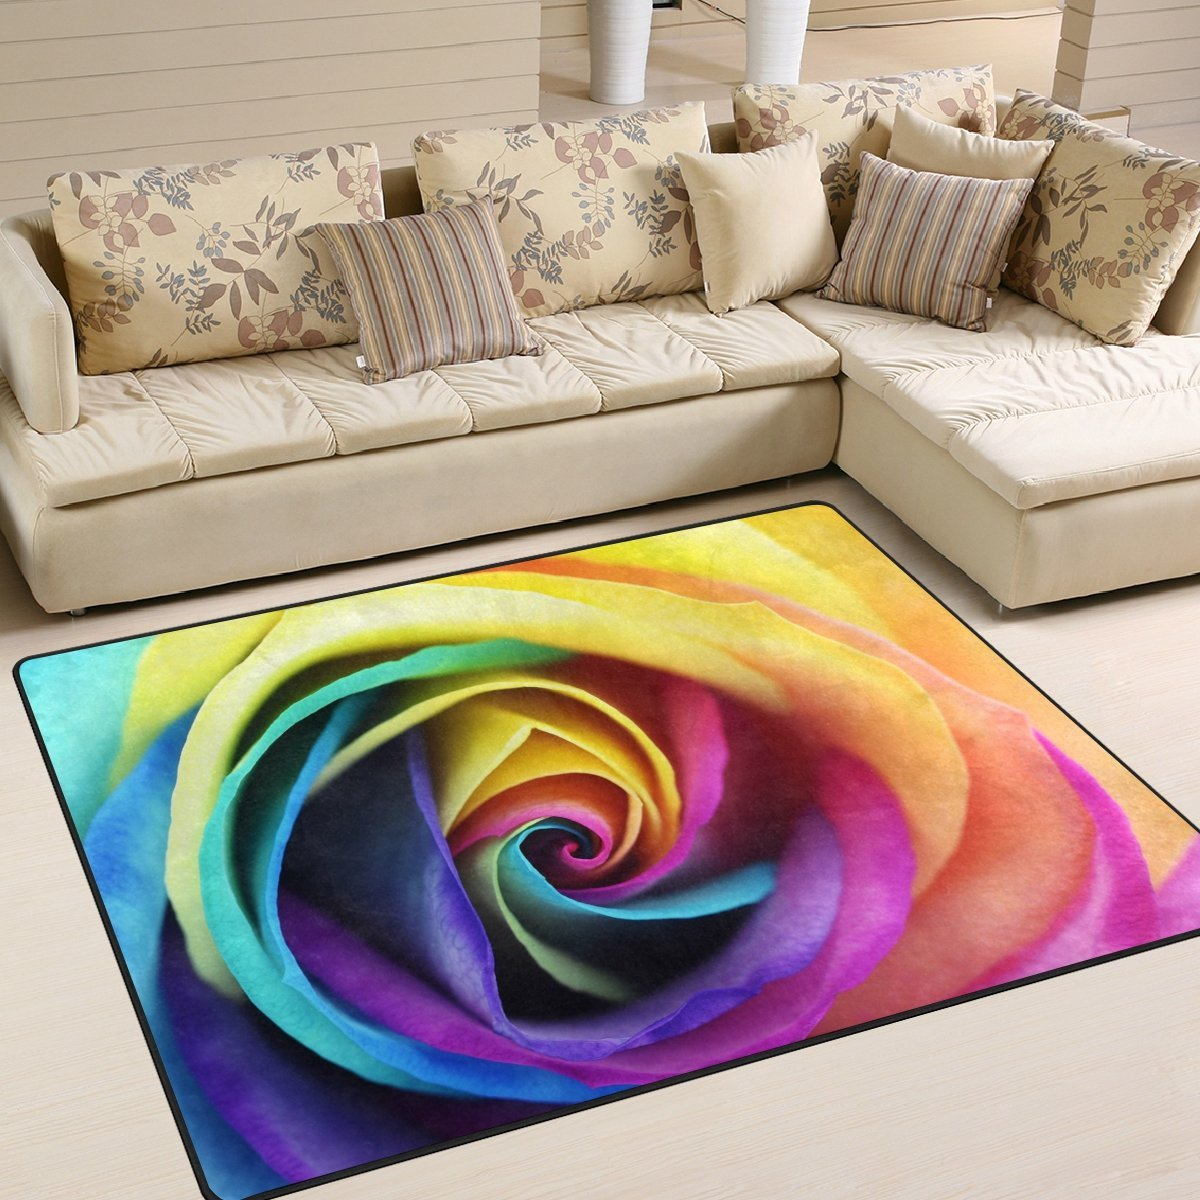 Colorful Rainbow Rose Flower Rug Thewowdecor